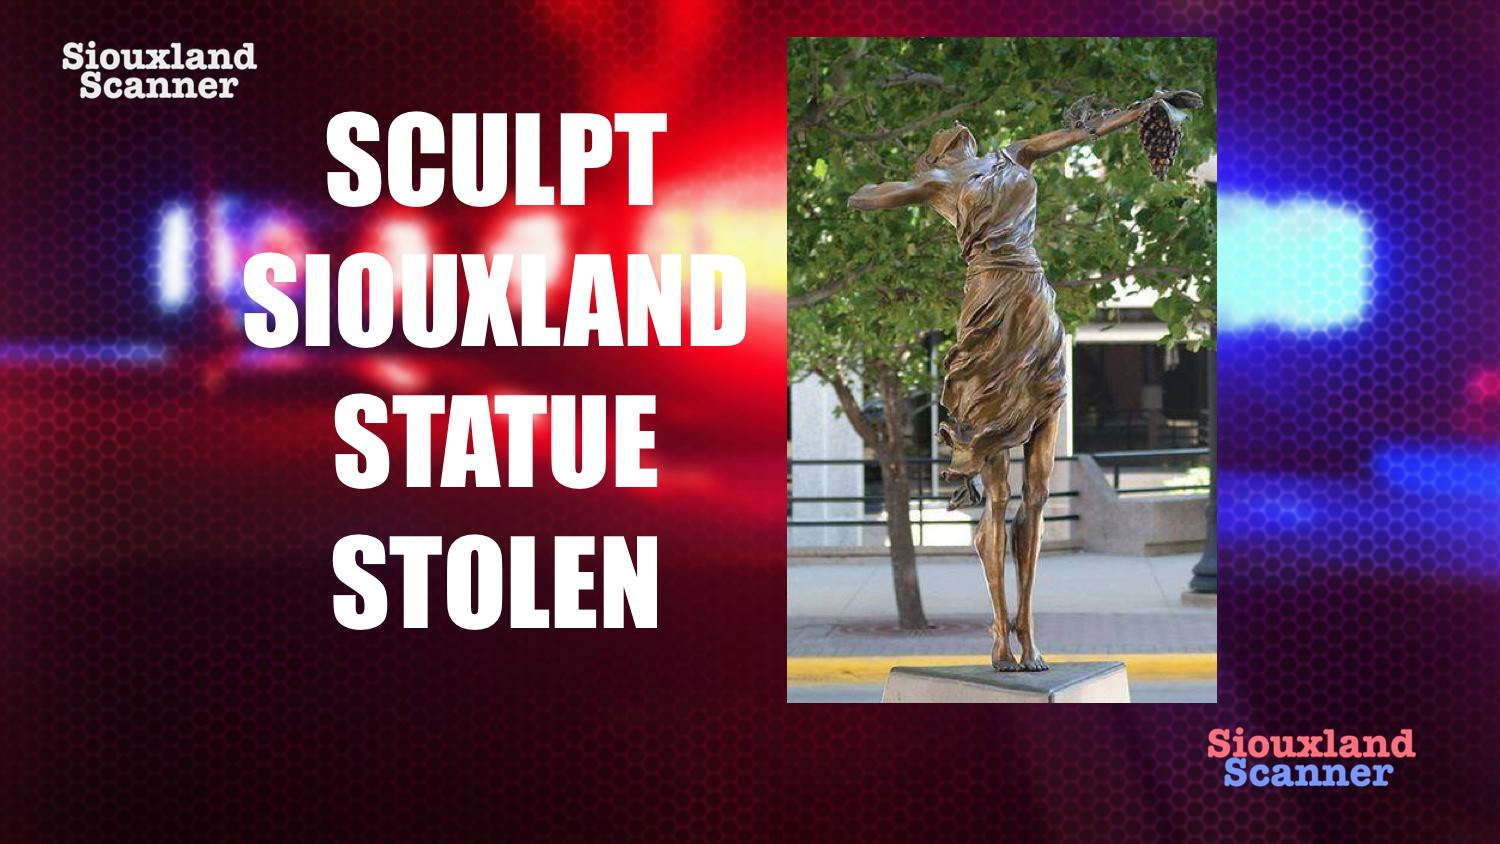 Sculpt Siouxland statue stolen from downtown Sioux City